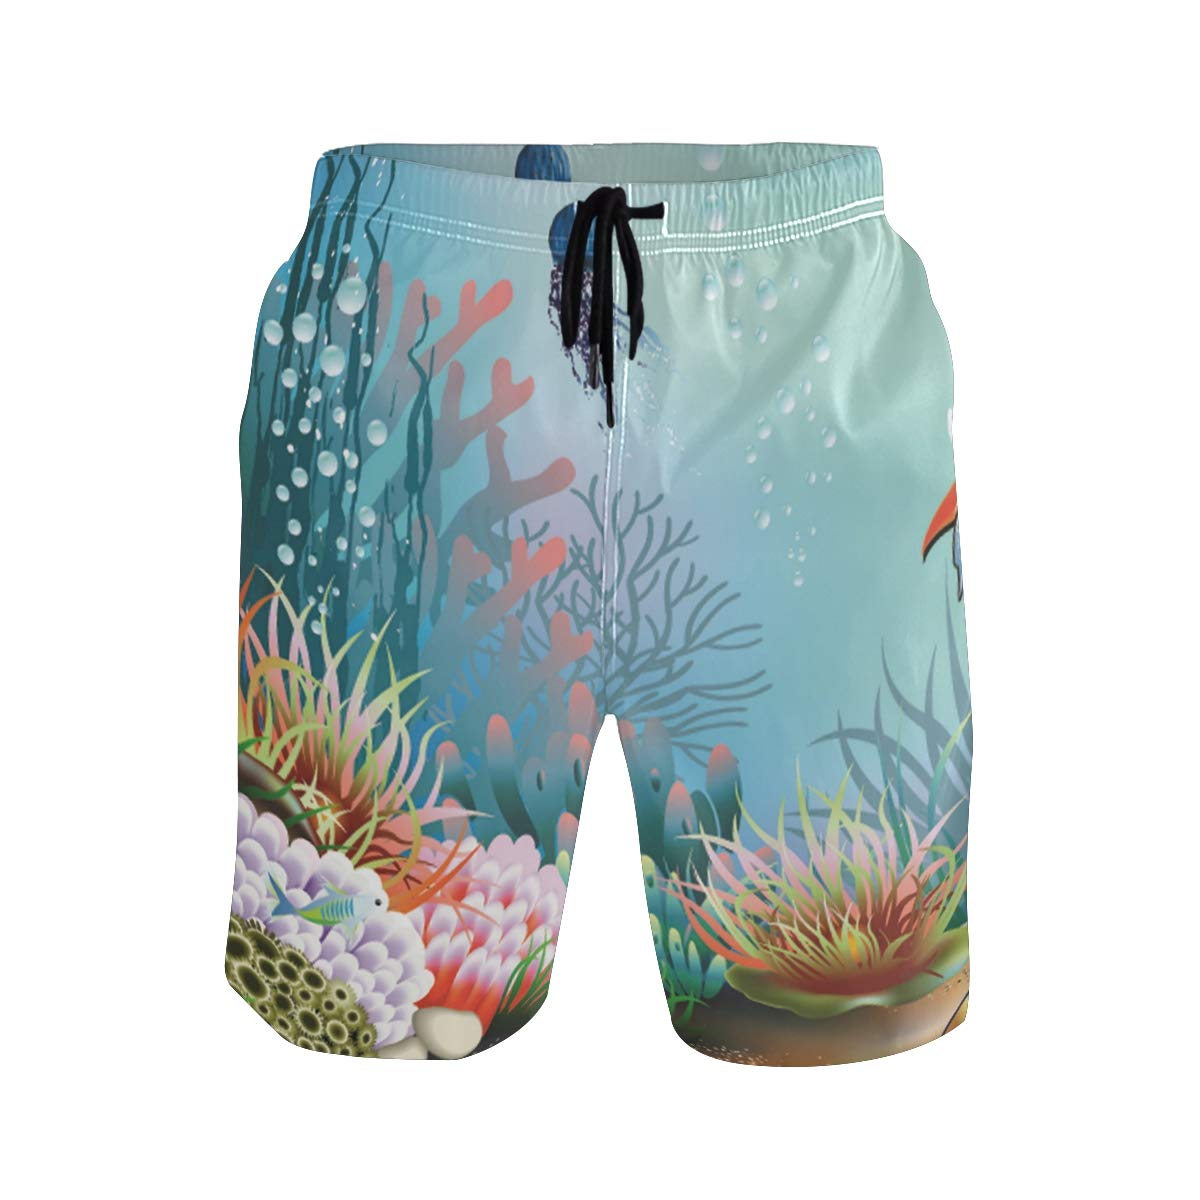 WIHVE Mens Beach Swim Trunks Coral Starfish and Tropical Sea Boxer Swimsuit Underwear Board Shorts with Pocket